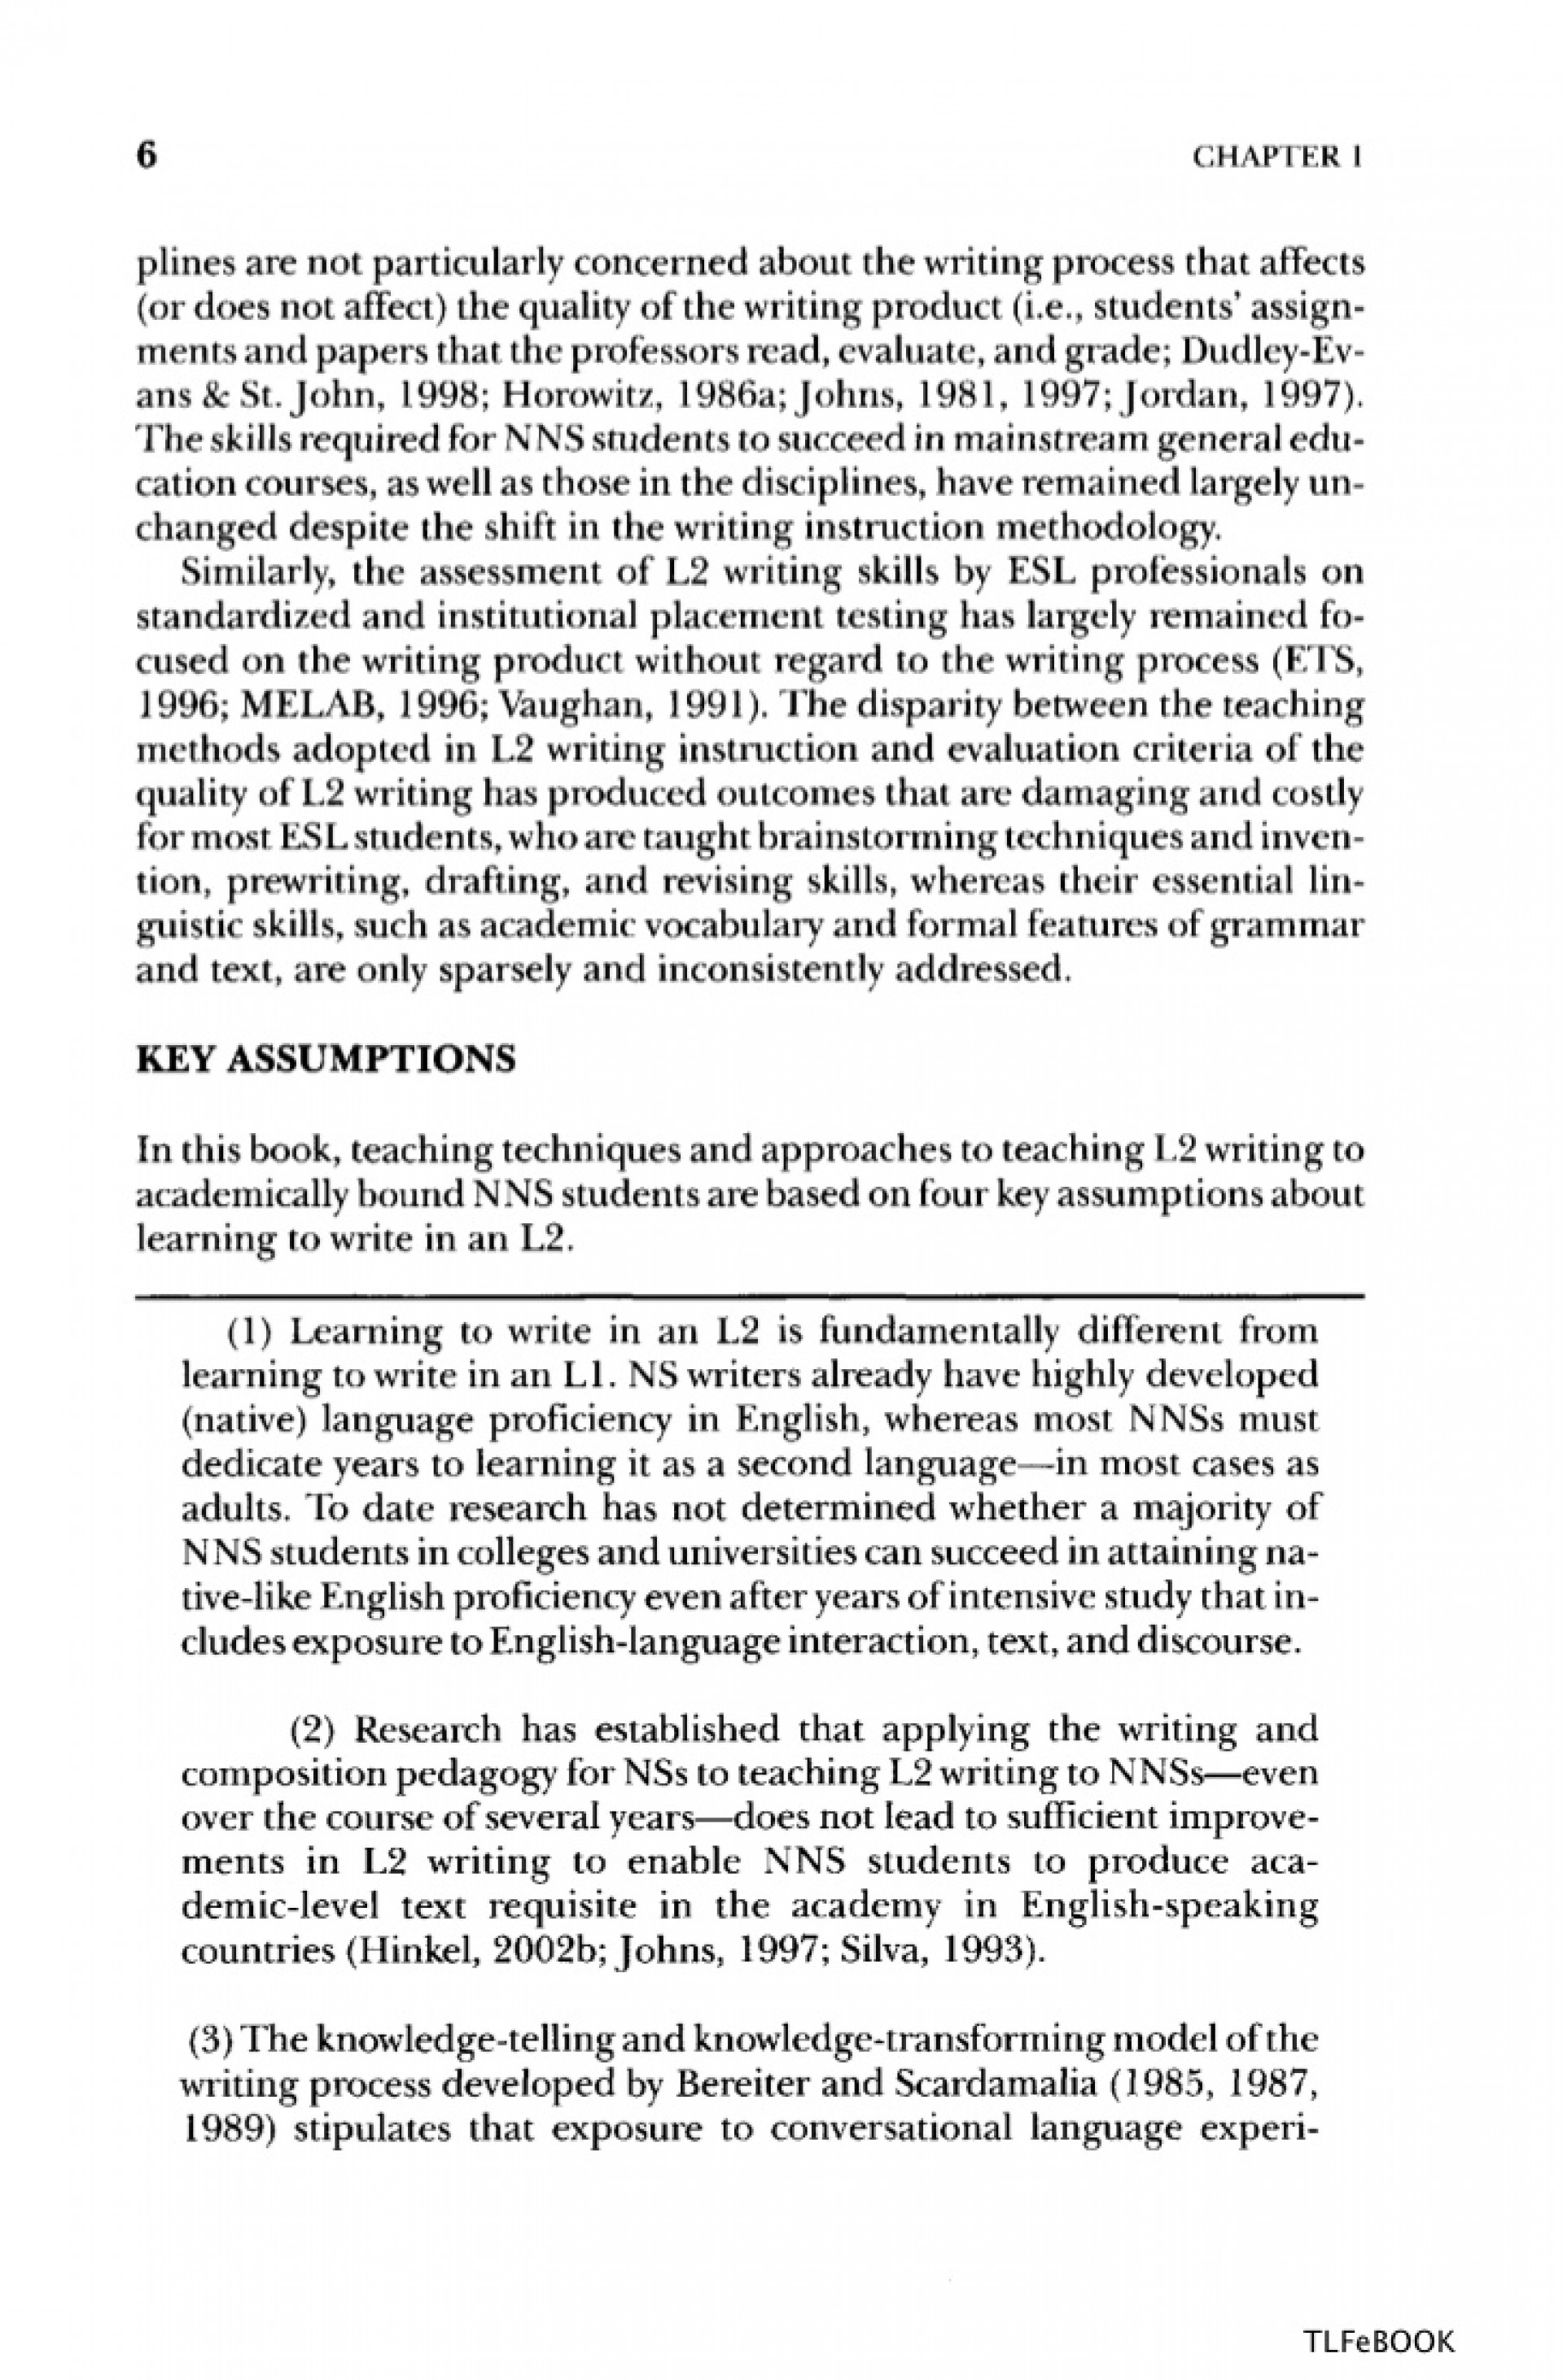 008 Essay Example English Teaching Academic Esl Writing Practical Techniques In Vocabulary And Grammar On Top Football Match For Class 7 Player 1920